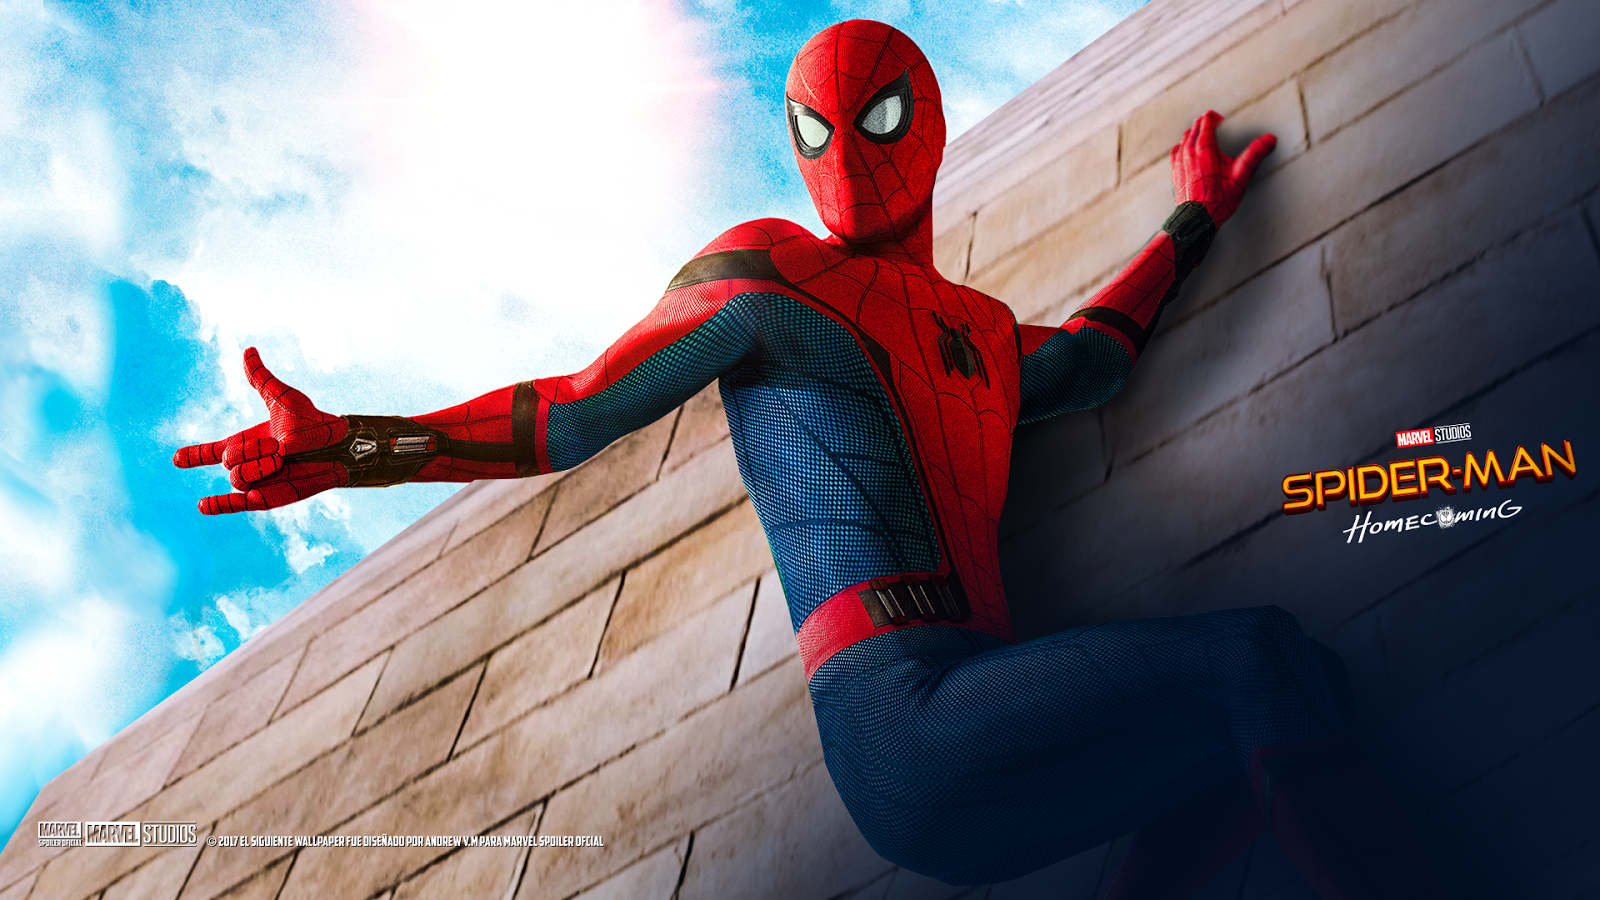 Spiderman Homecoming Movie Wallpaper 2017